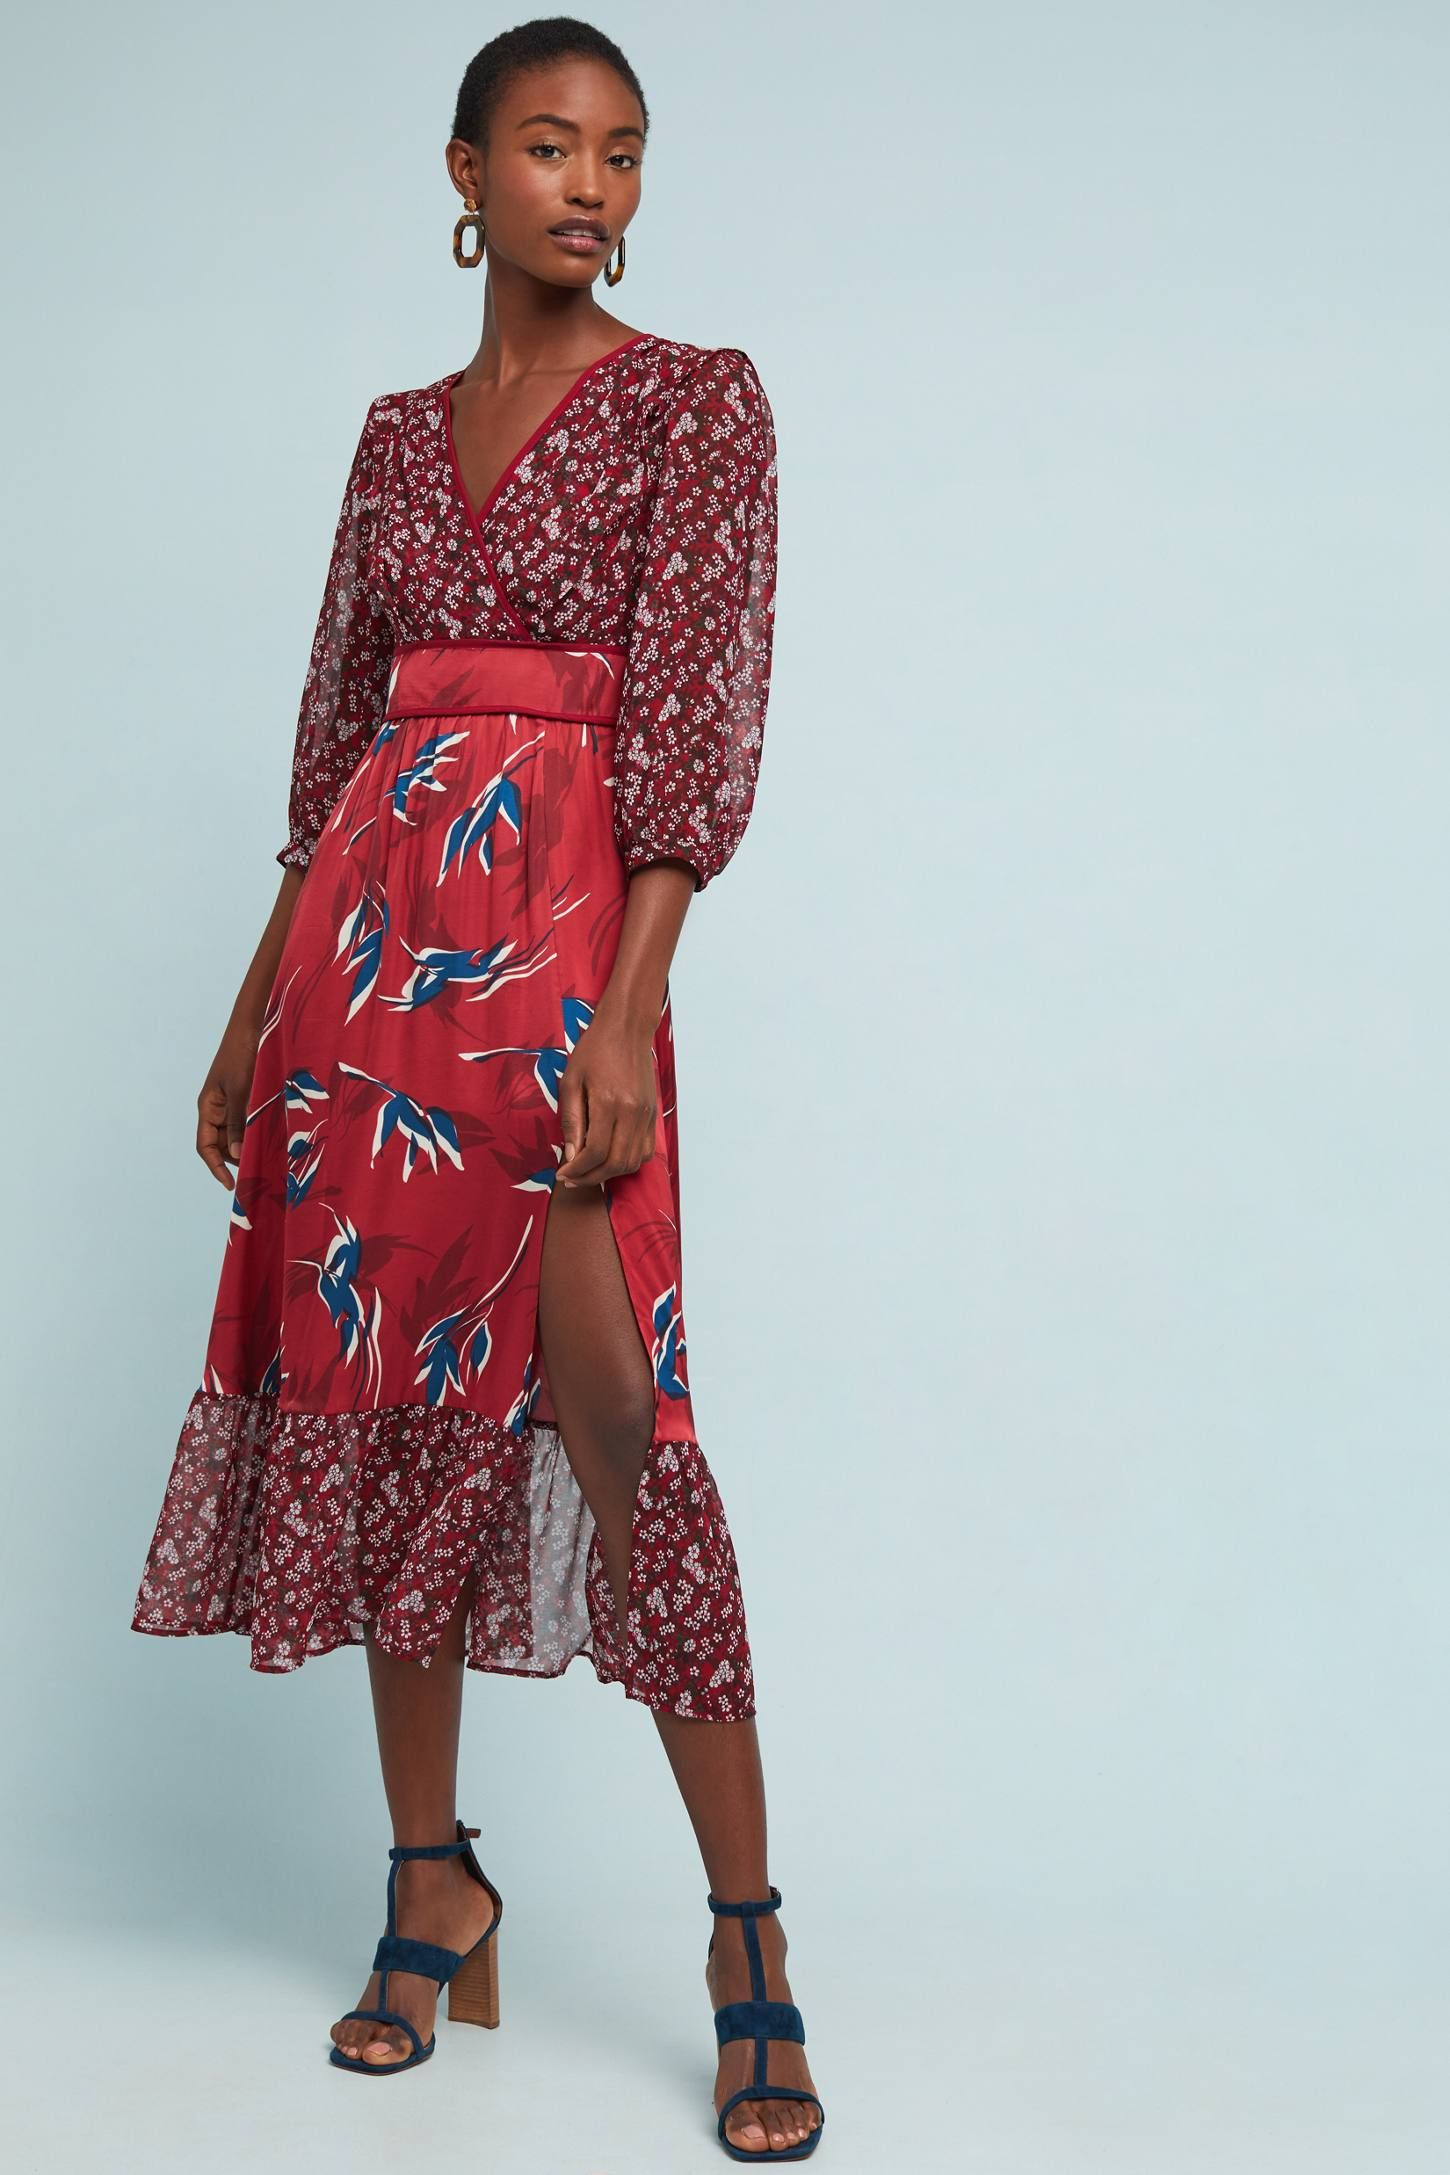 Adler Floral Dress  Trendy Outfits Dresses Chic Outfits